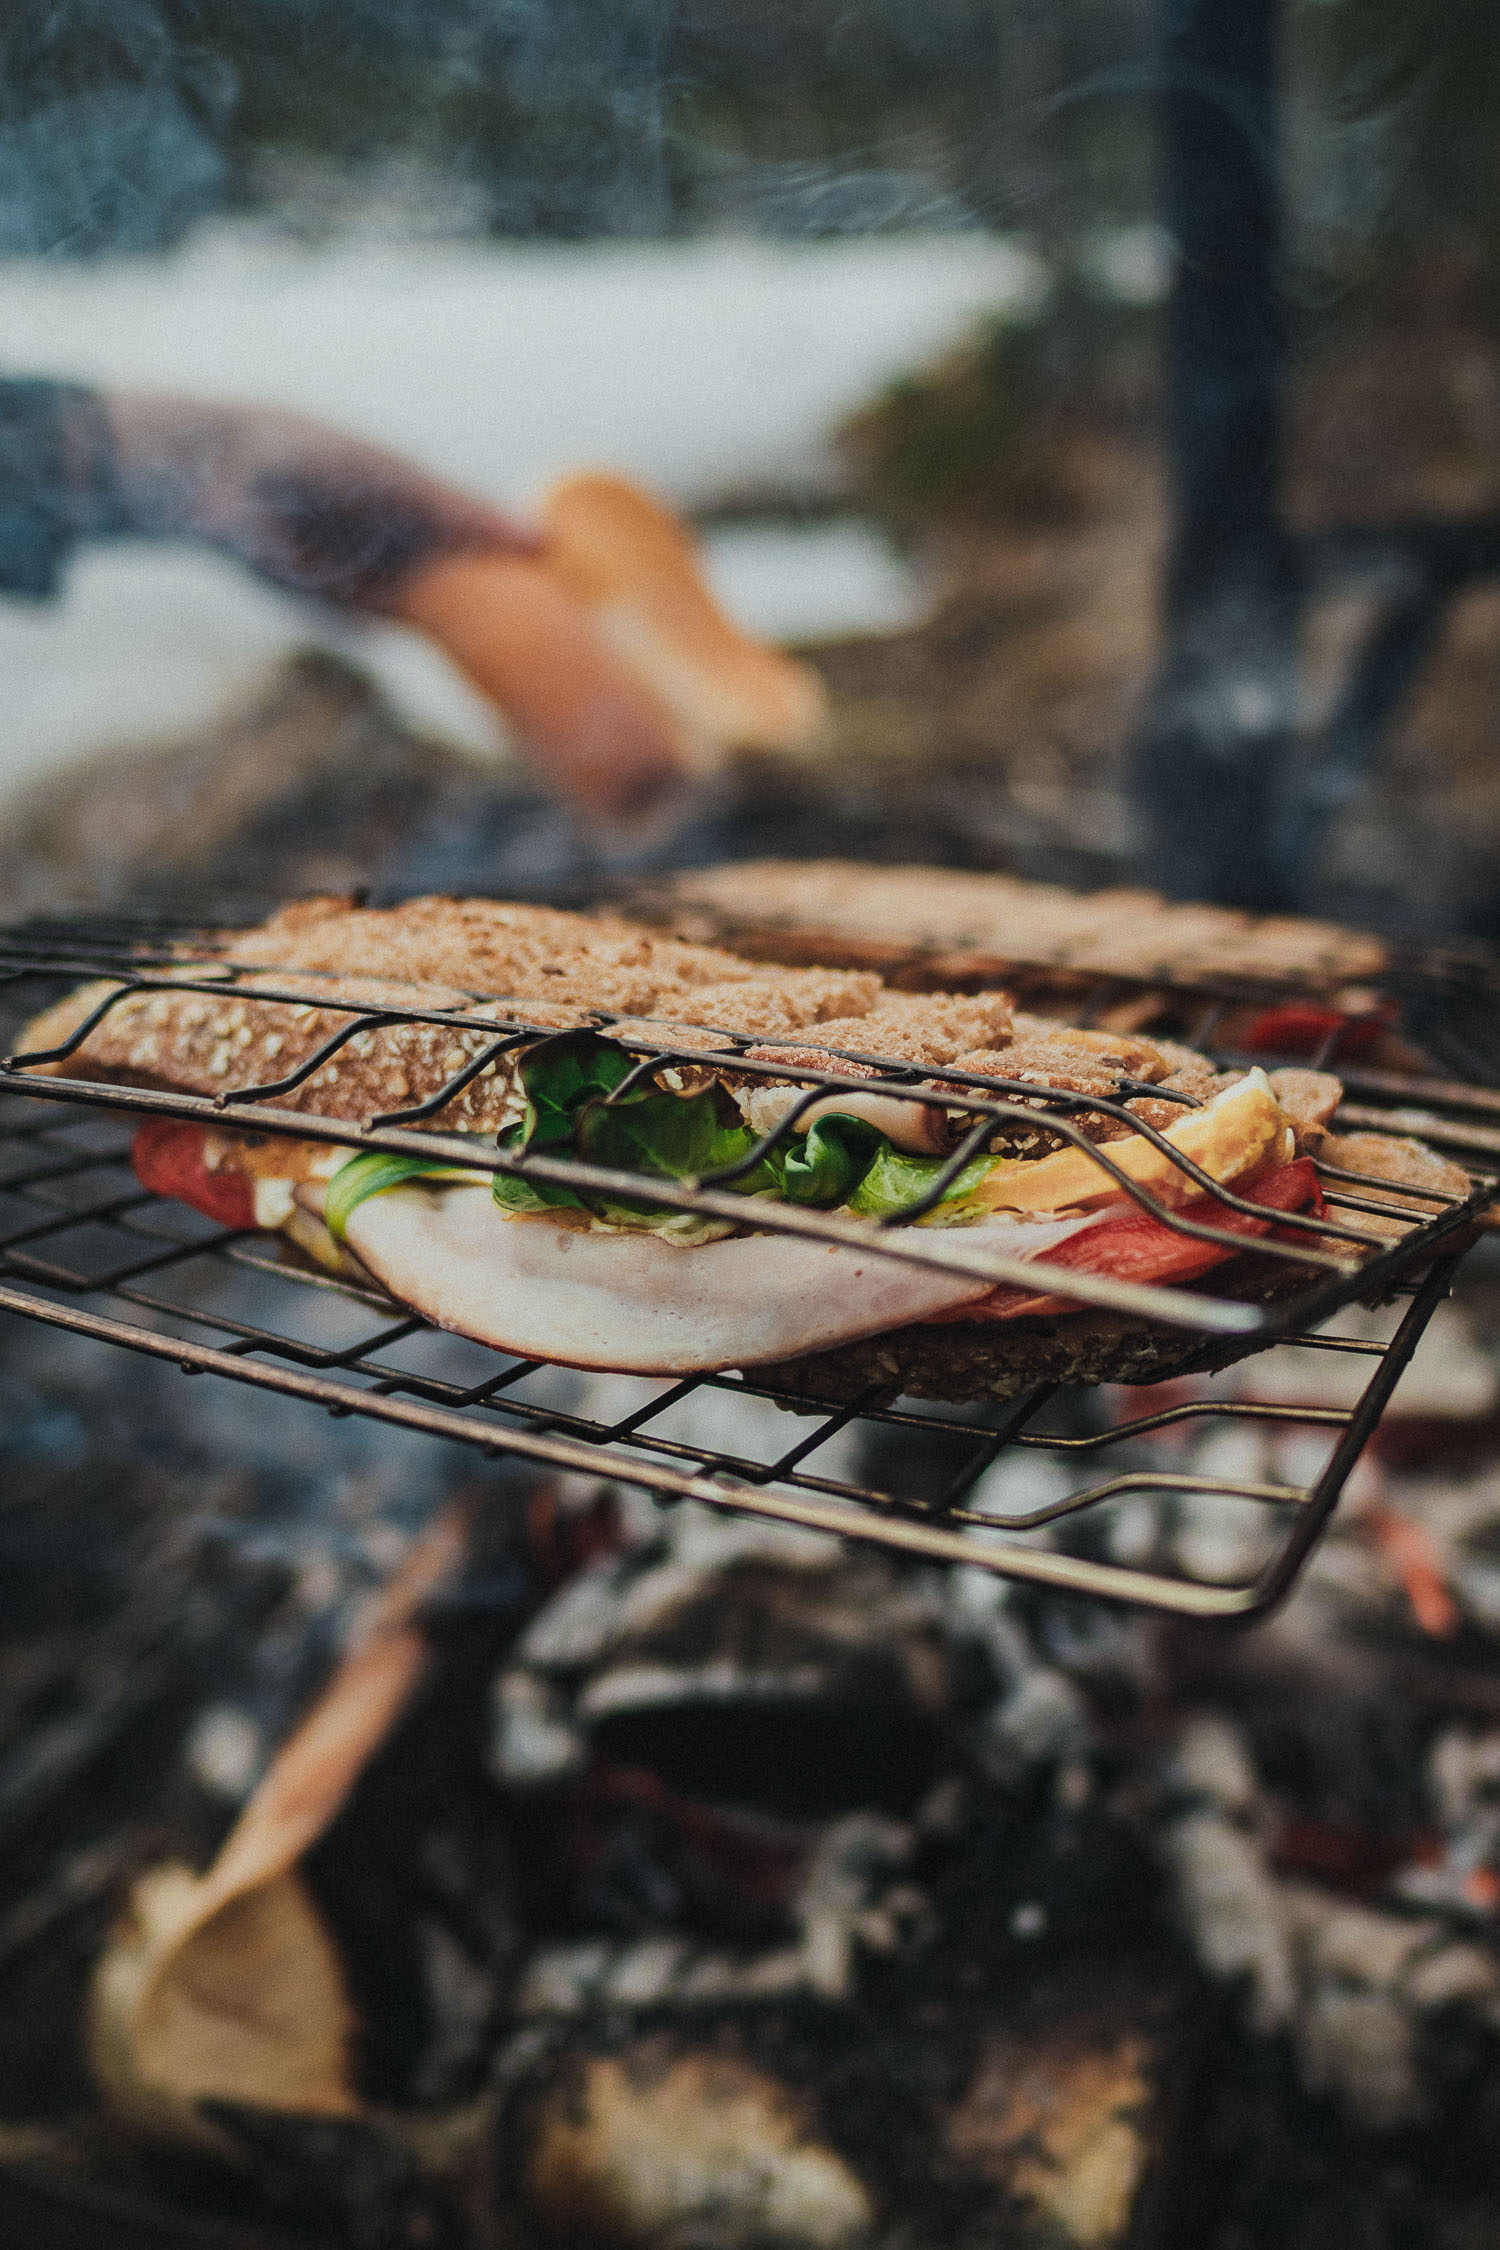 cooking sandwiches over open fire